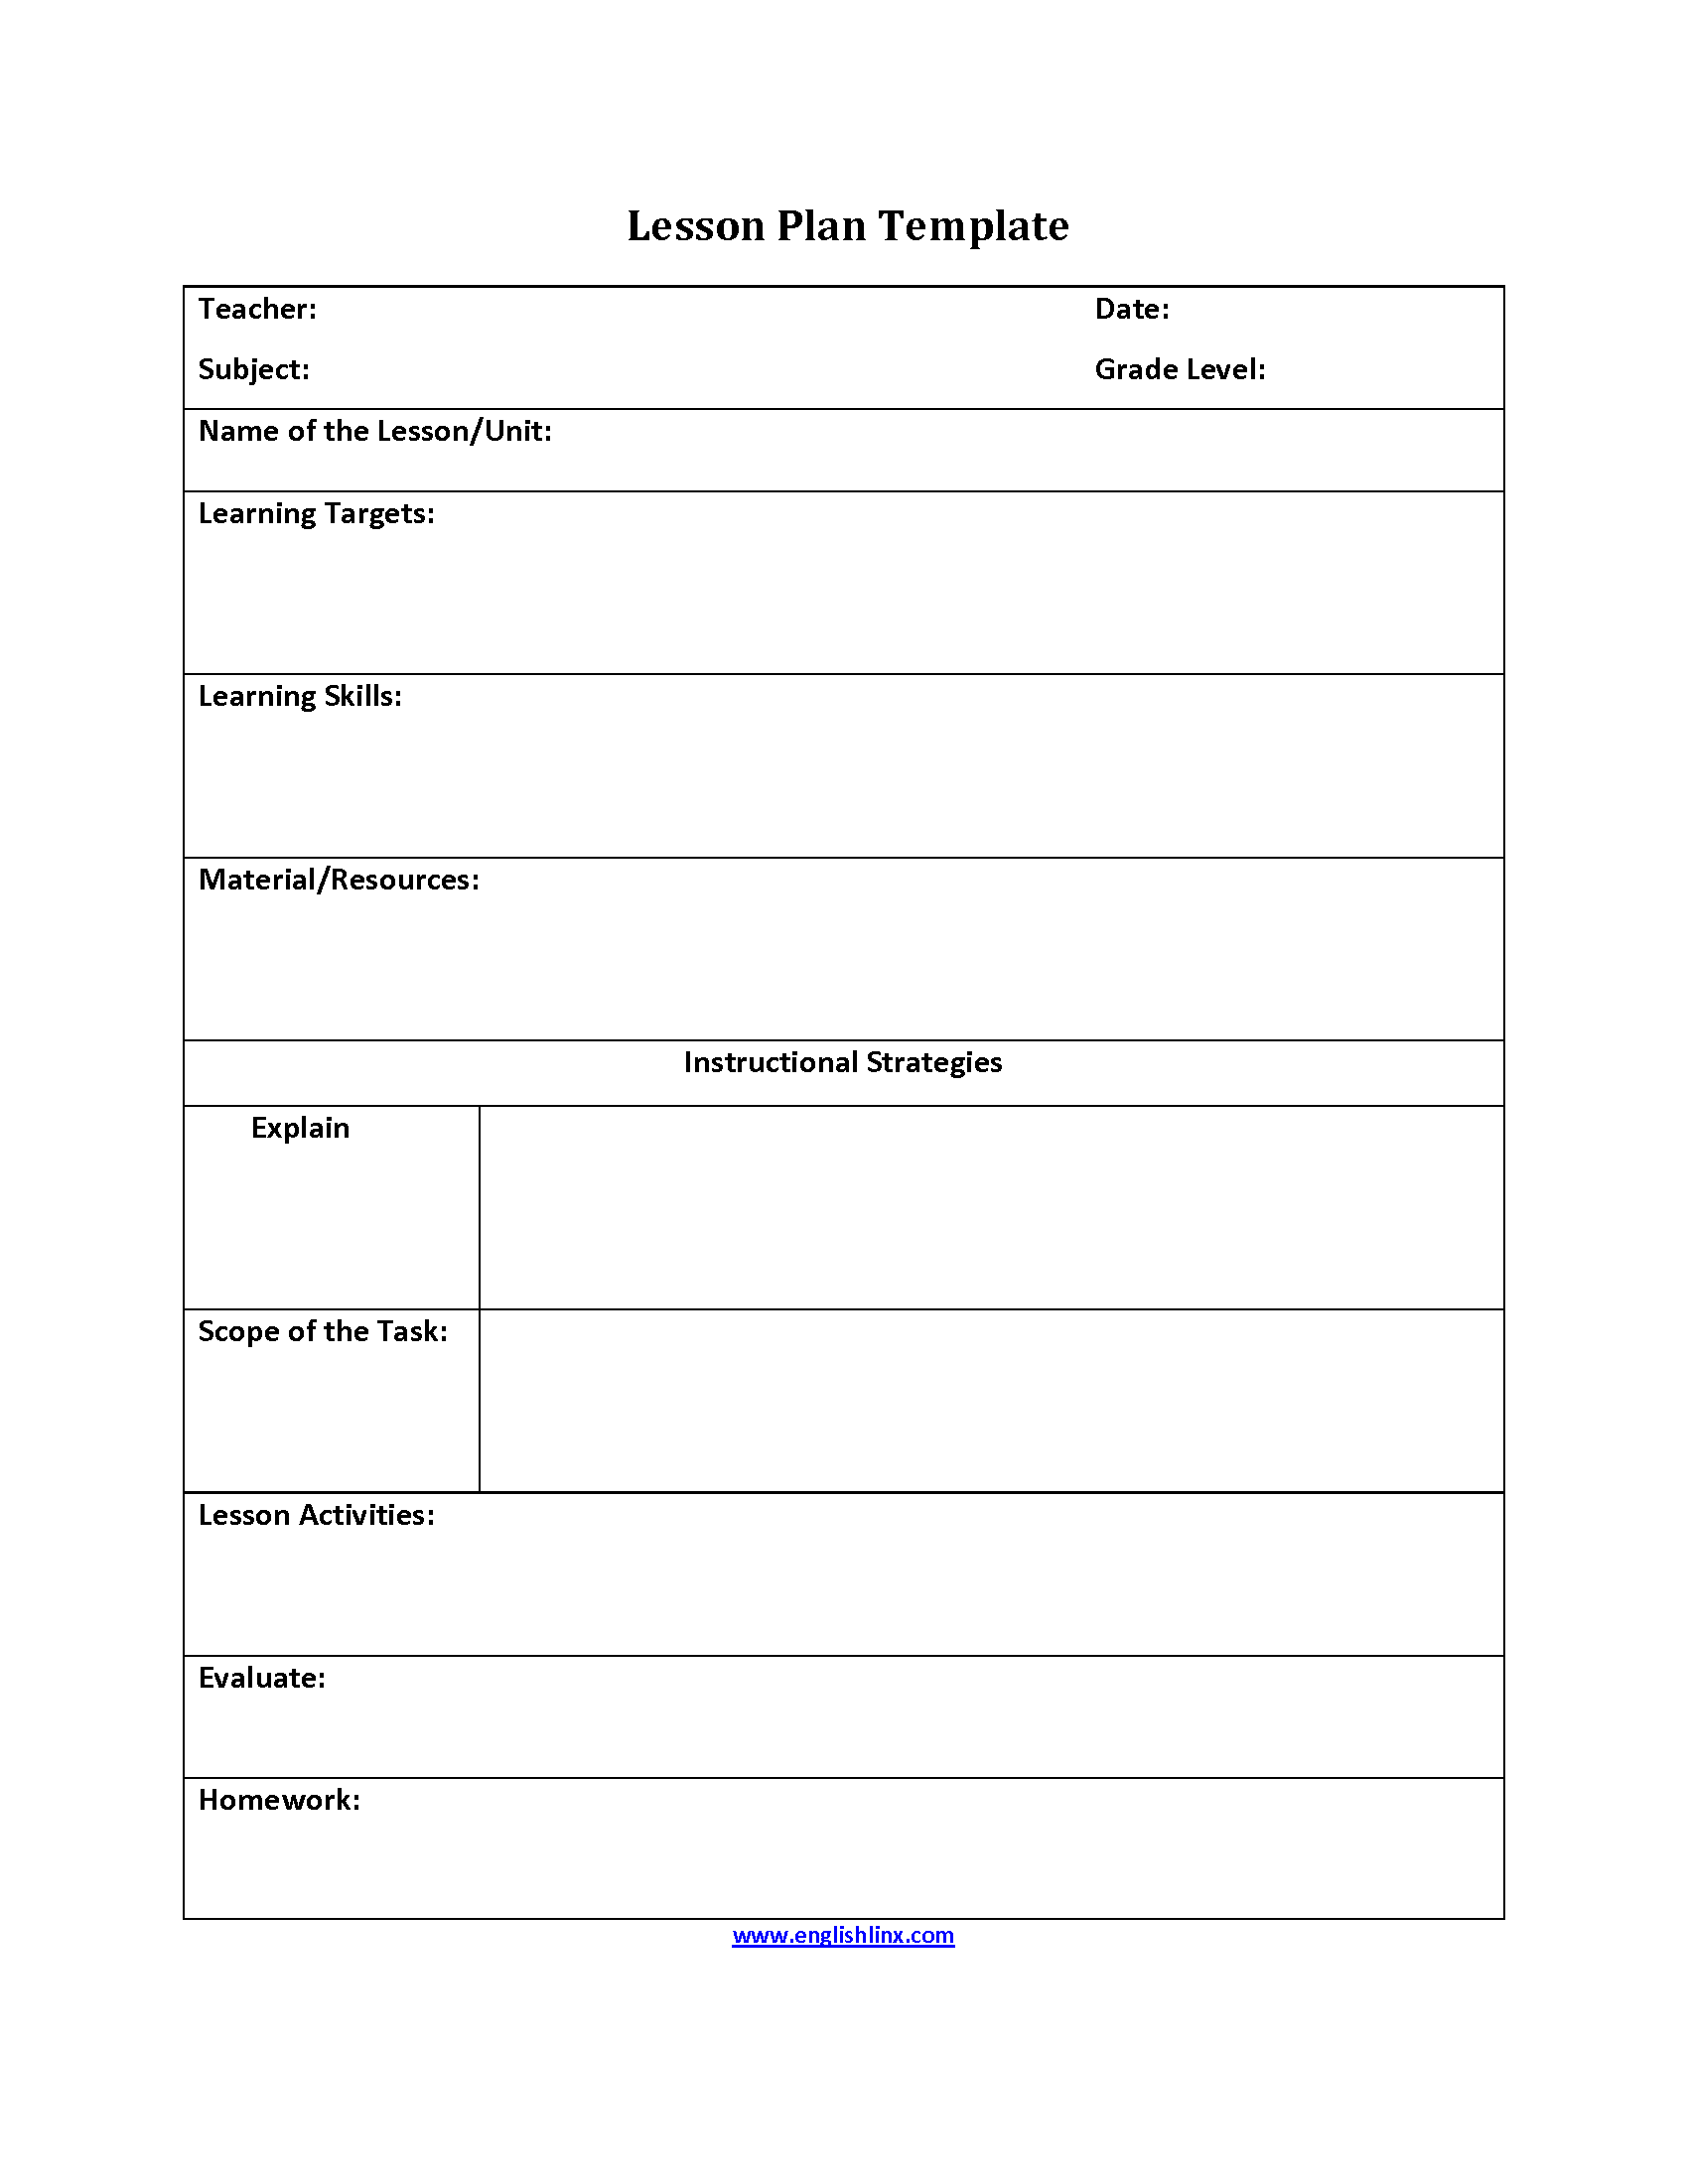 Lesson plan template for Free lesson plan template word